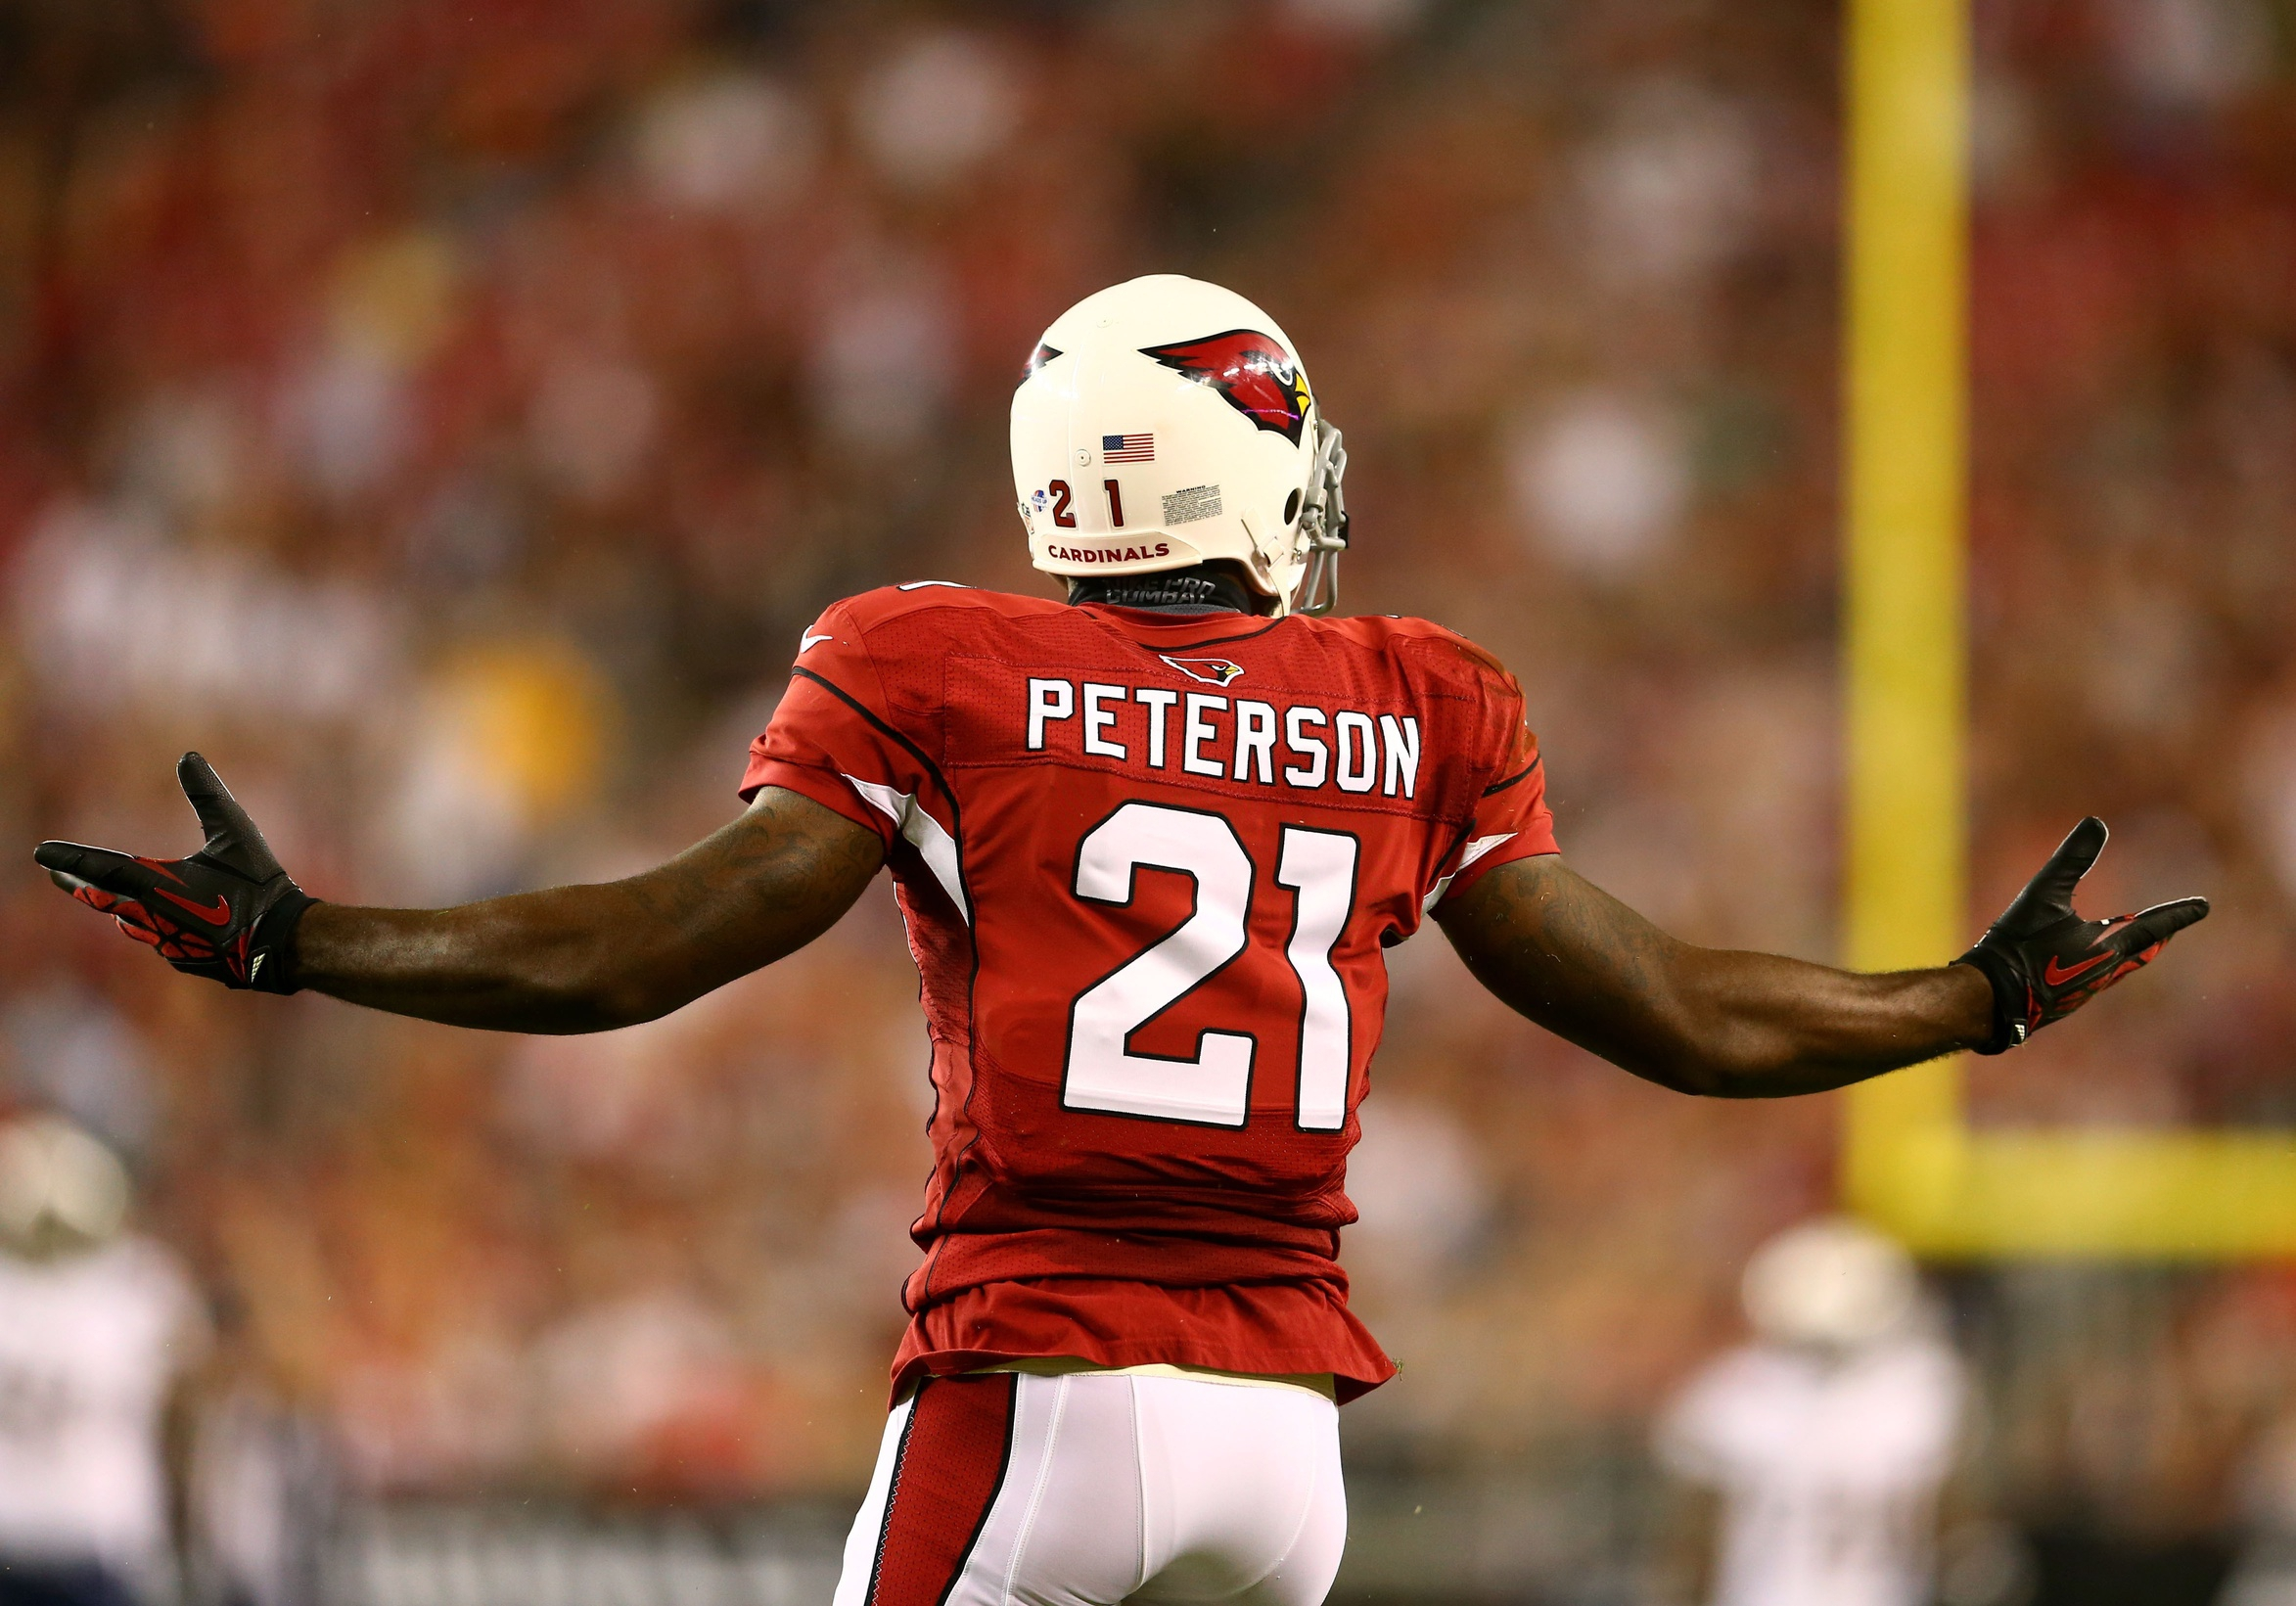 Patrick Peterson Wallpapers